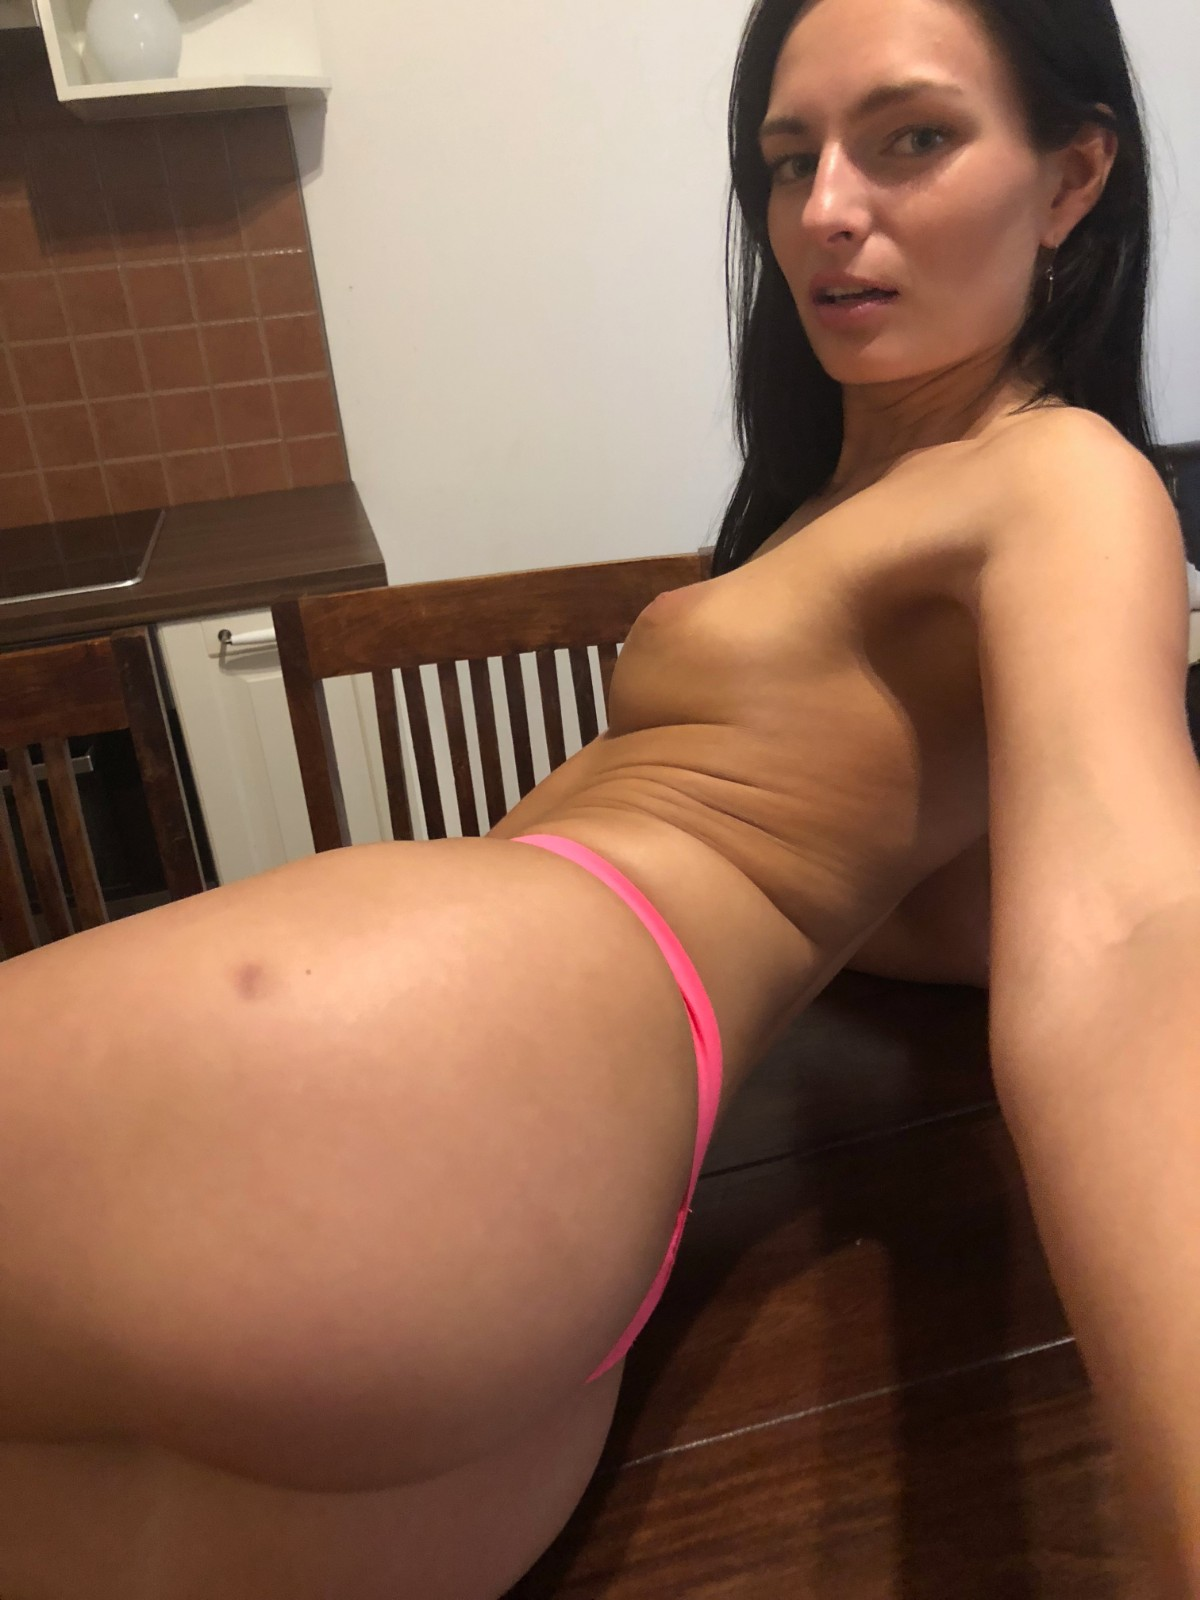 🌸🌸🌸🌸🌸🌸🌸First Time Sex, New In Town??Come Fuck Me??Ready Now🌸🌸🌸🌸🌸🌸🌸